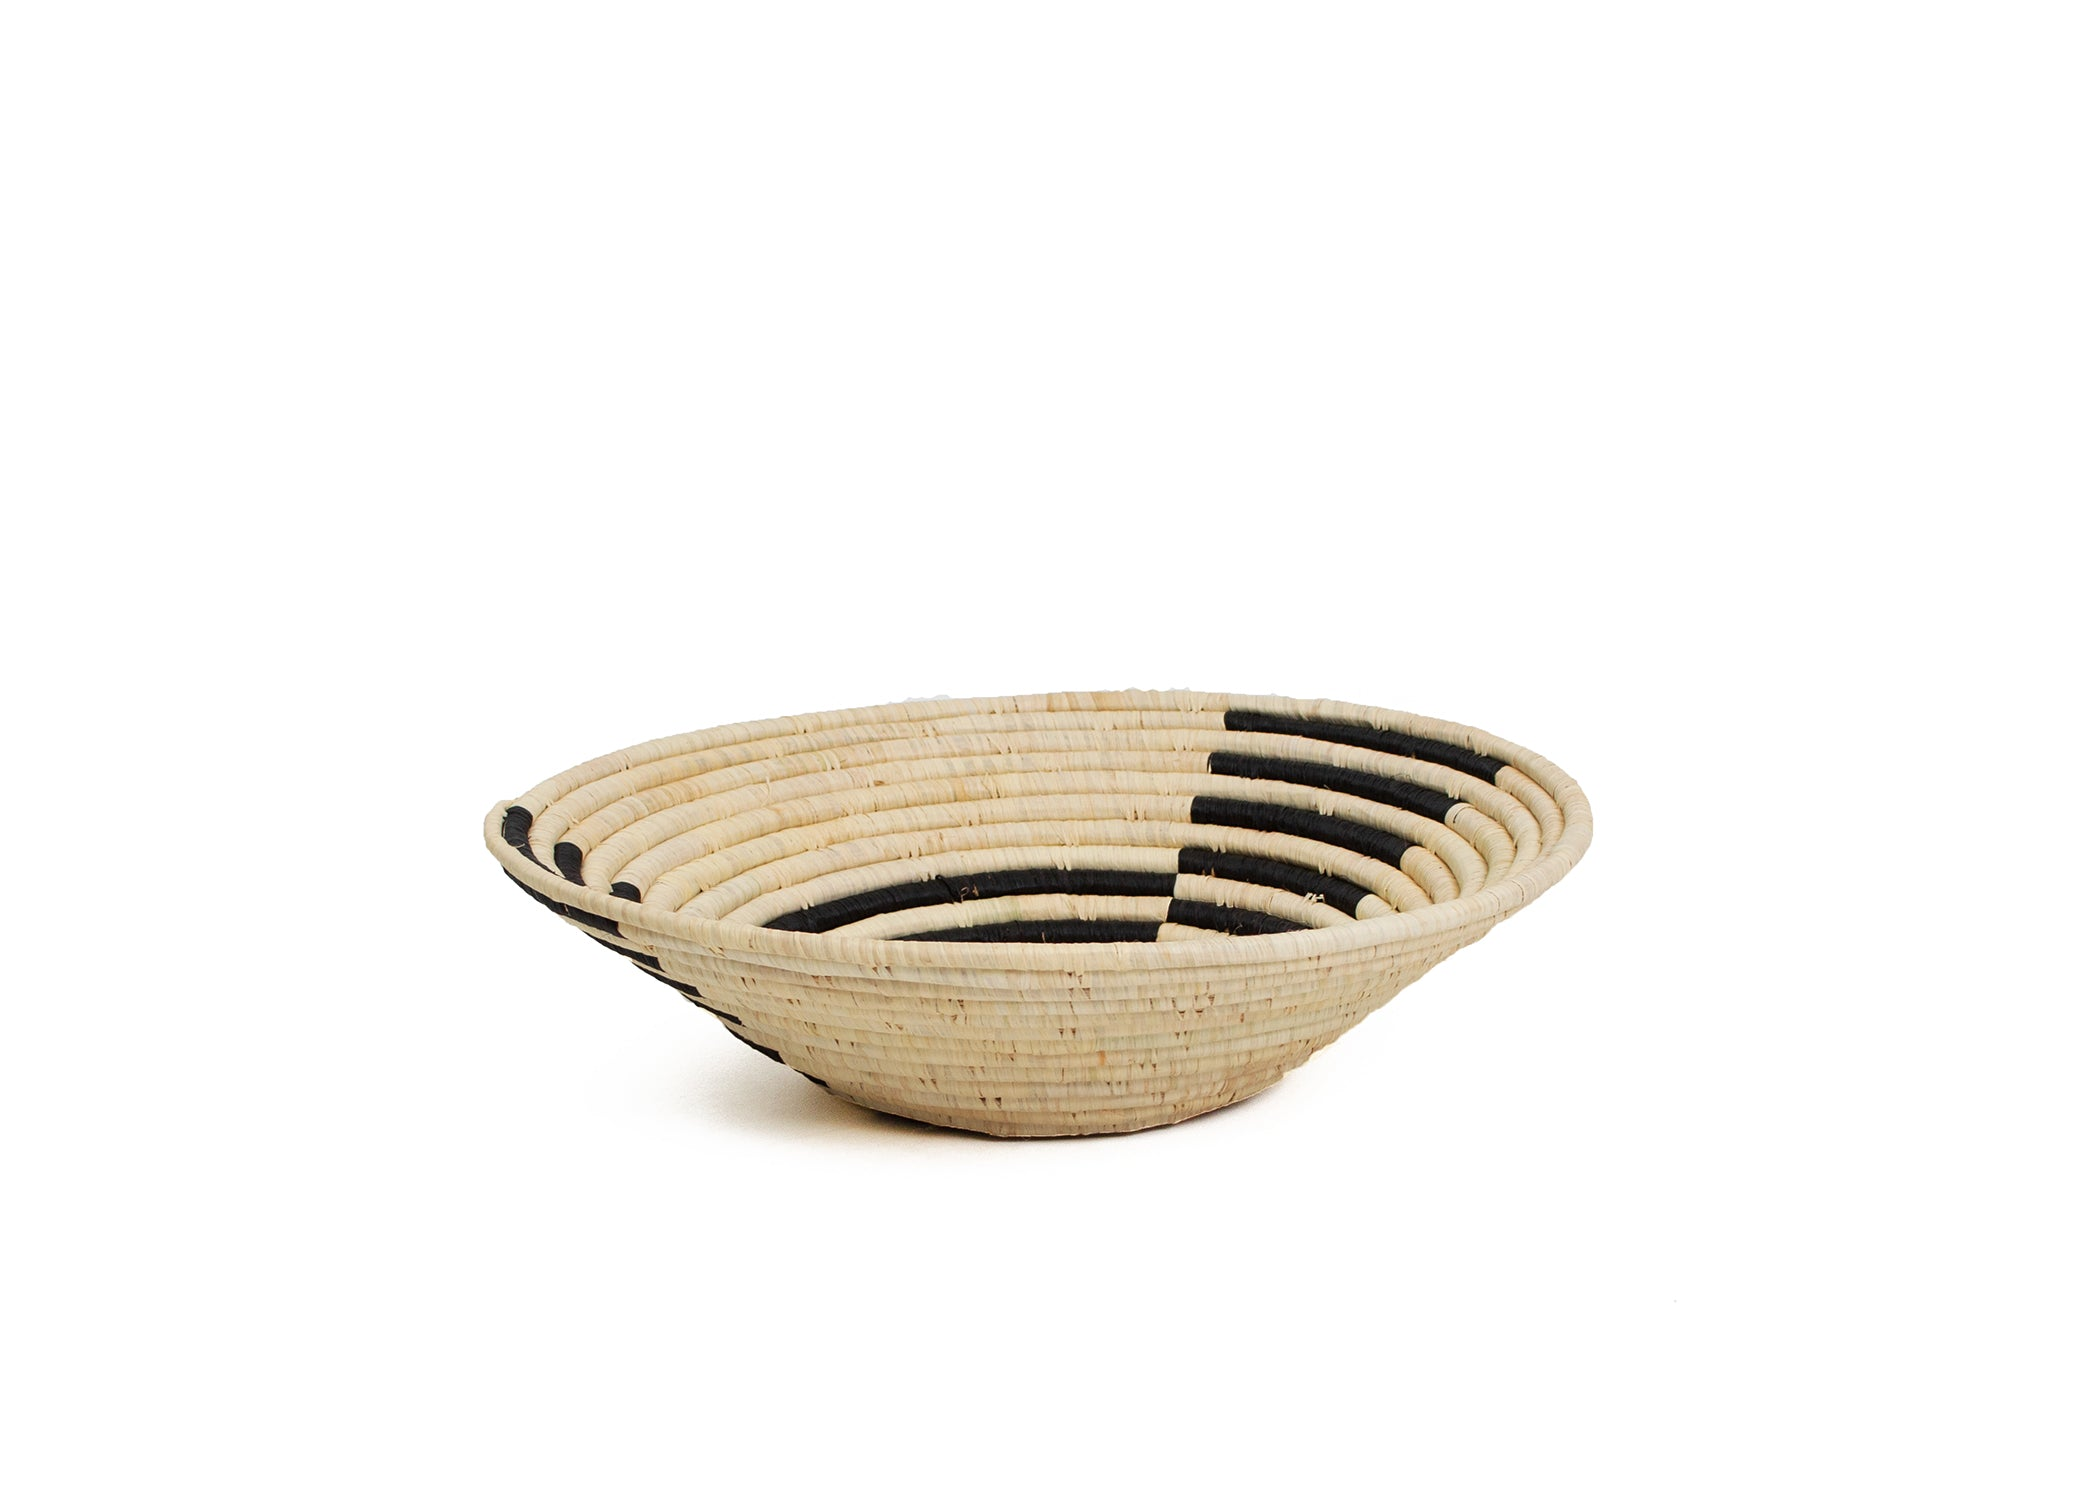 Geo Black Large Raffia Bowl - KAZI - Artisan made high quality home decor and wall art